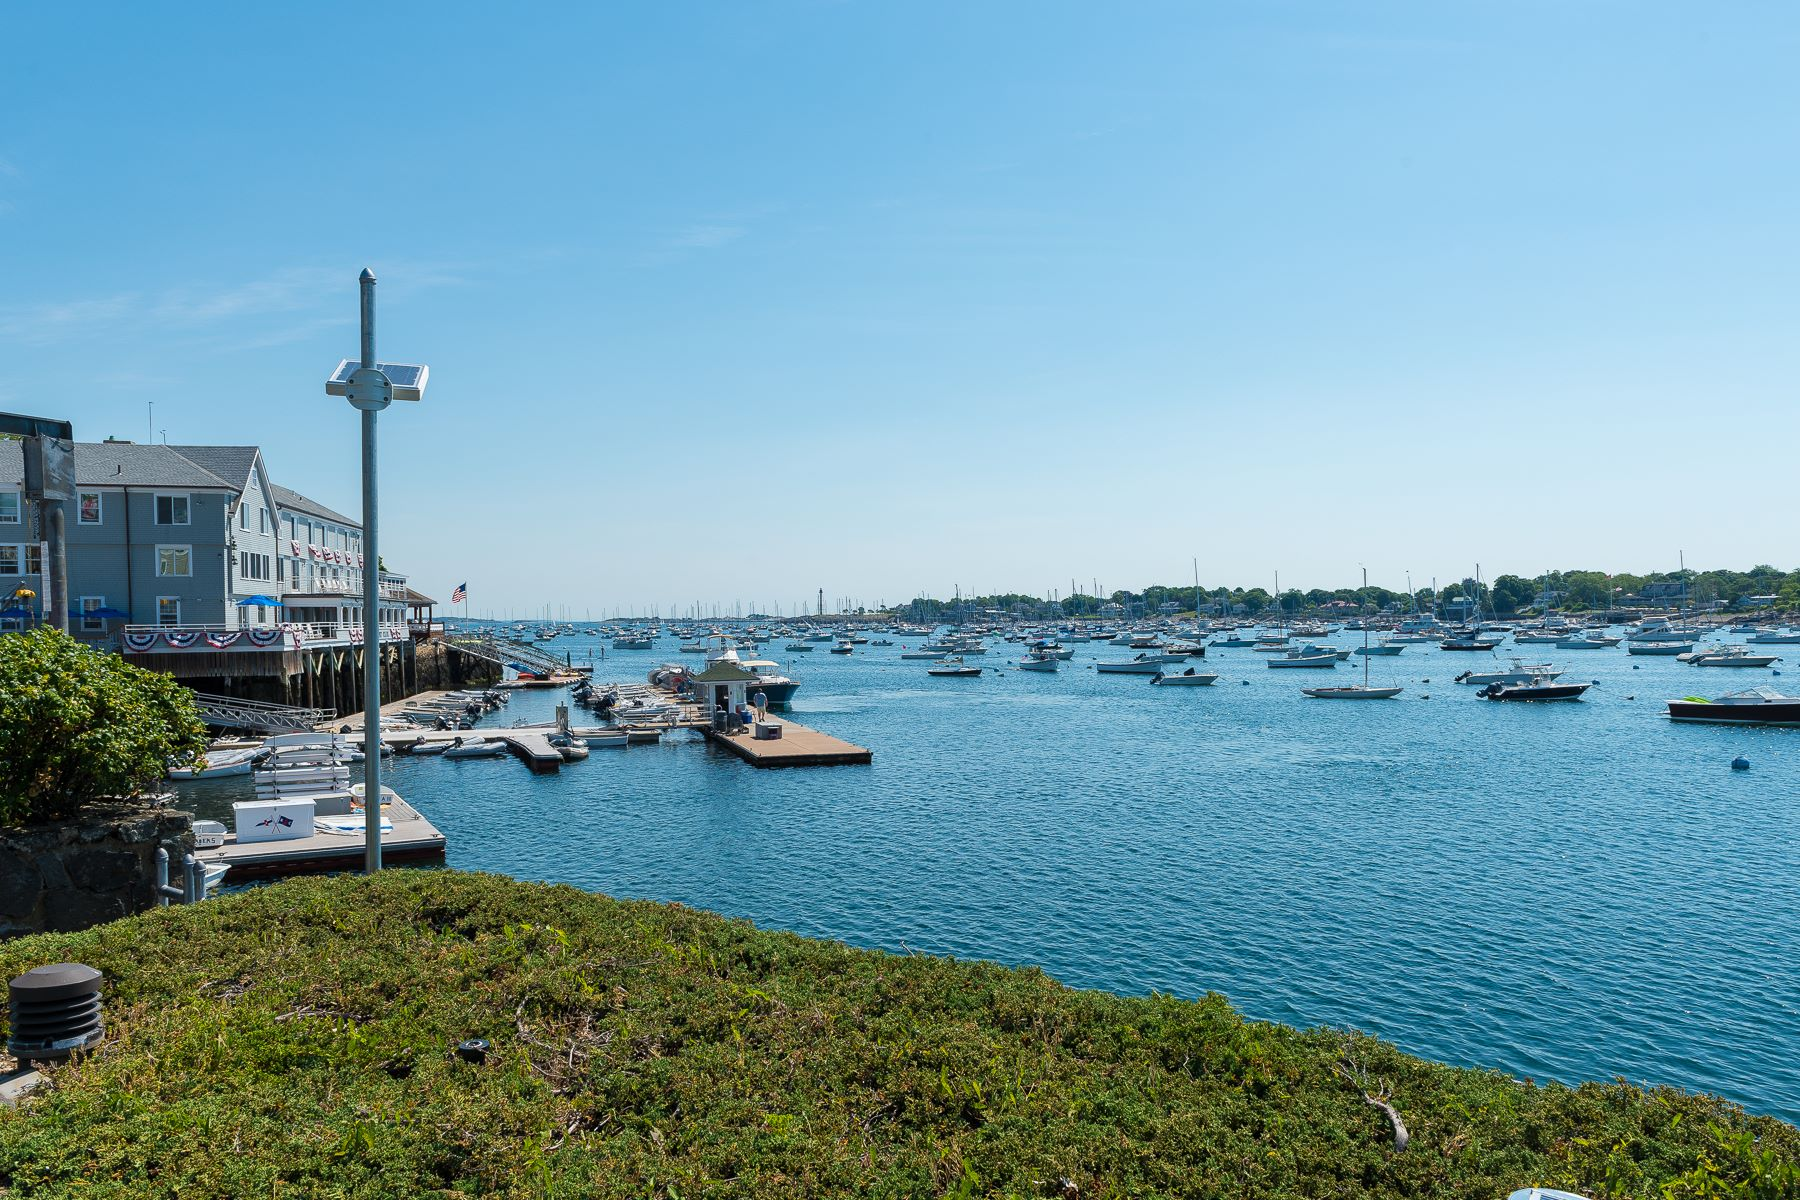 Condominium for Sale at Meticulously Redesigned Harbor Front Condominium 24 Lee Street B9 Marblehead, Massachusetts 01945 United States